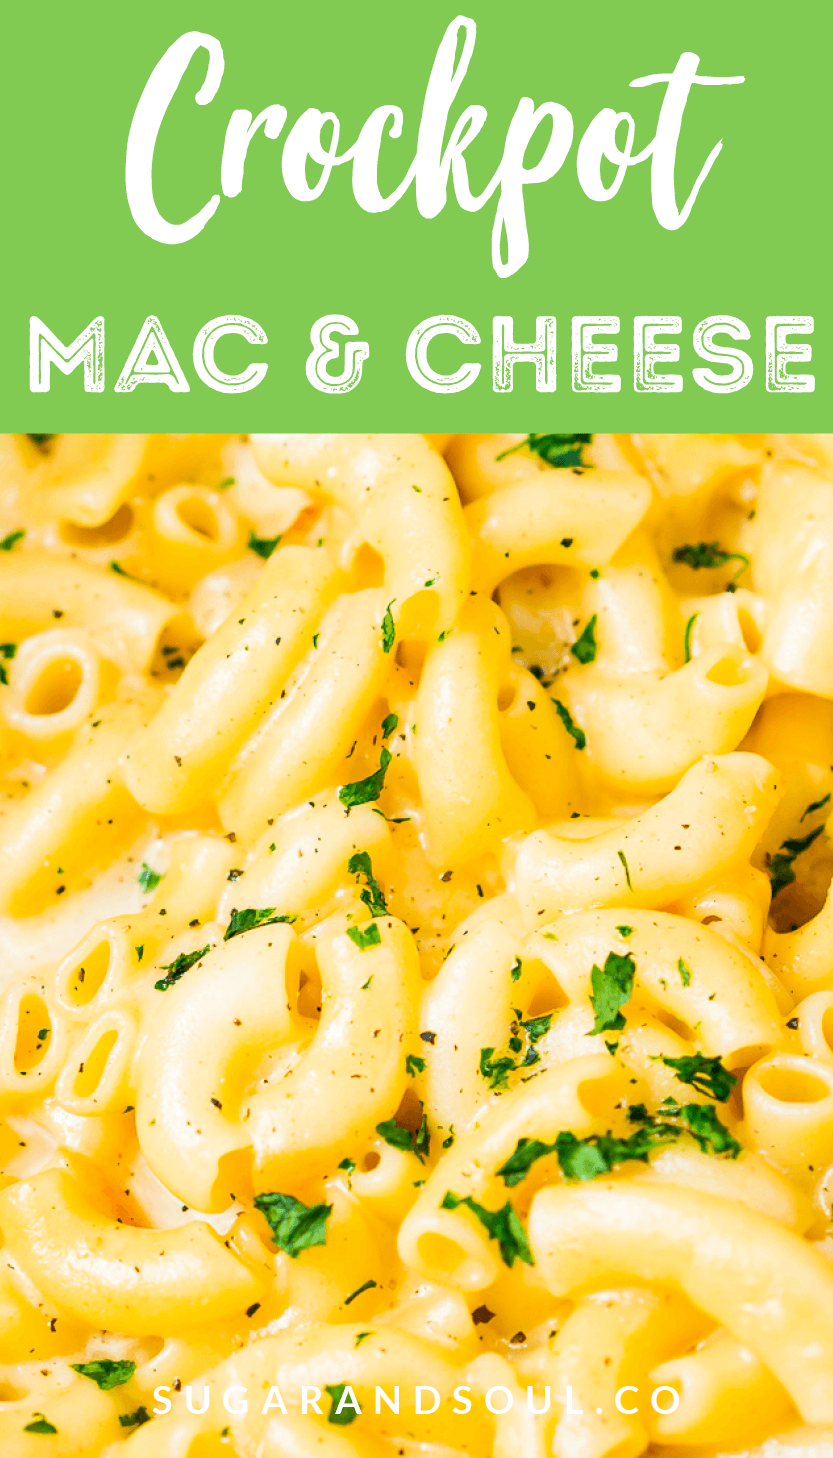 This Crock Pot Mac and Cheese is an easy and delicious dinner loaded with cheddar and Colby Jack cheeses and perfect for a weeknight meal or cozy weekend dinner!